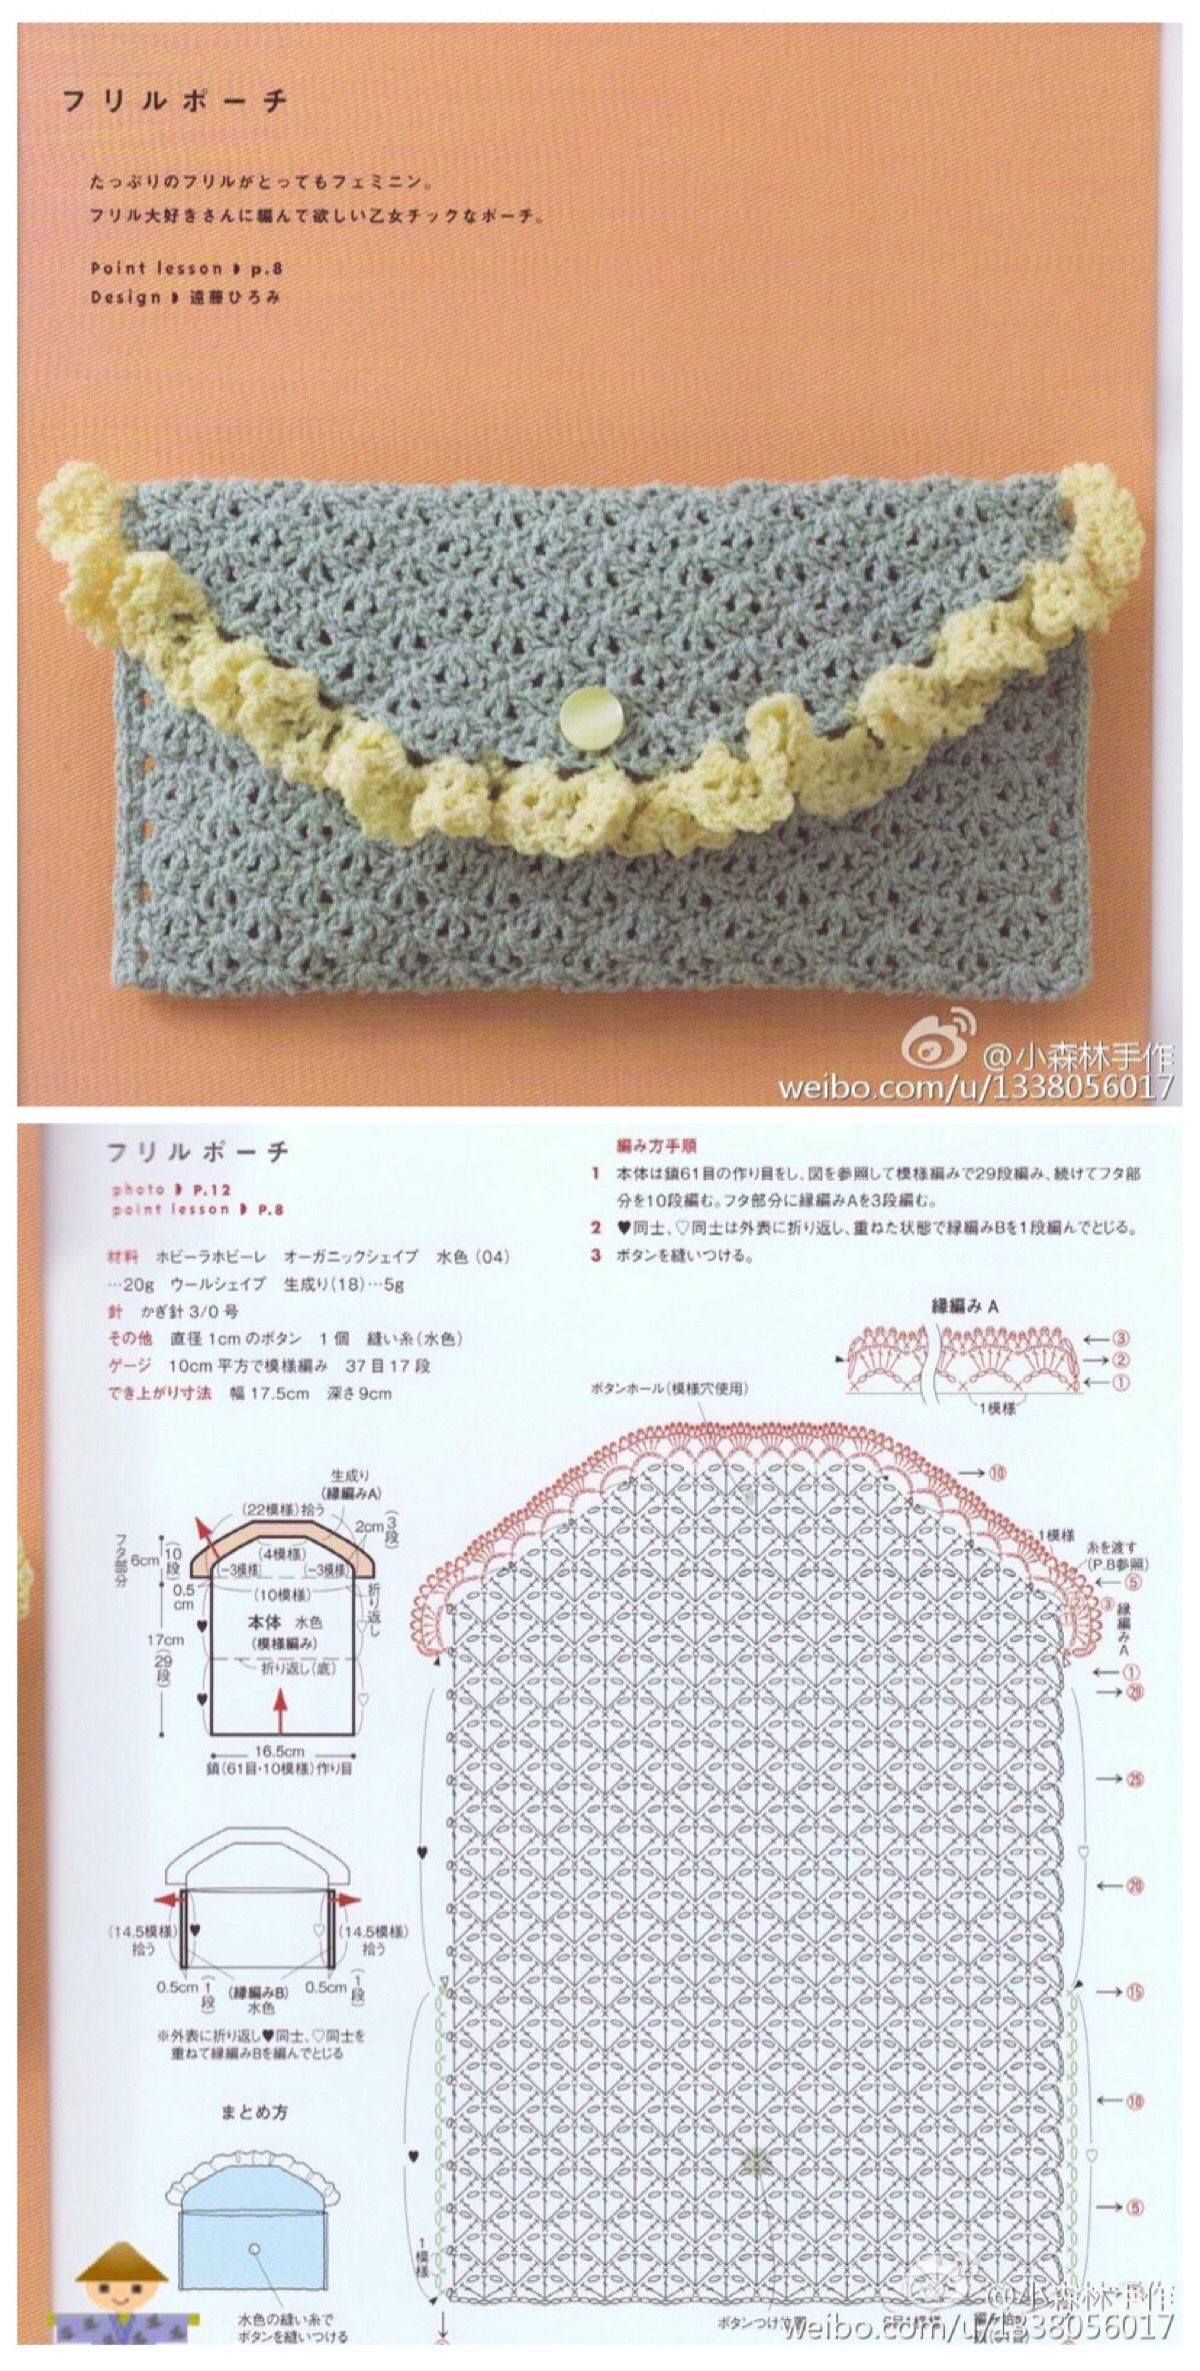 hight resolution of crochet diagram for cute clutch purse